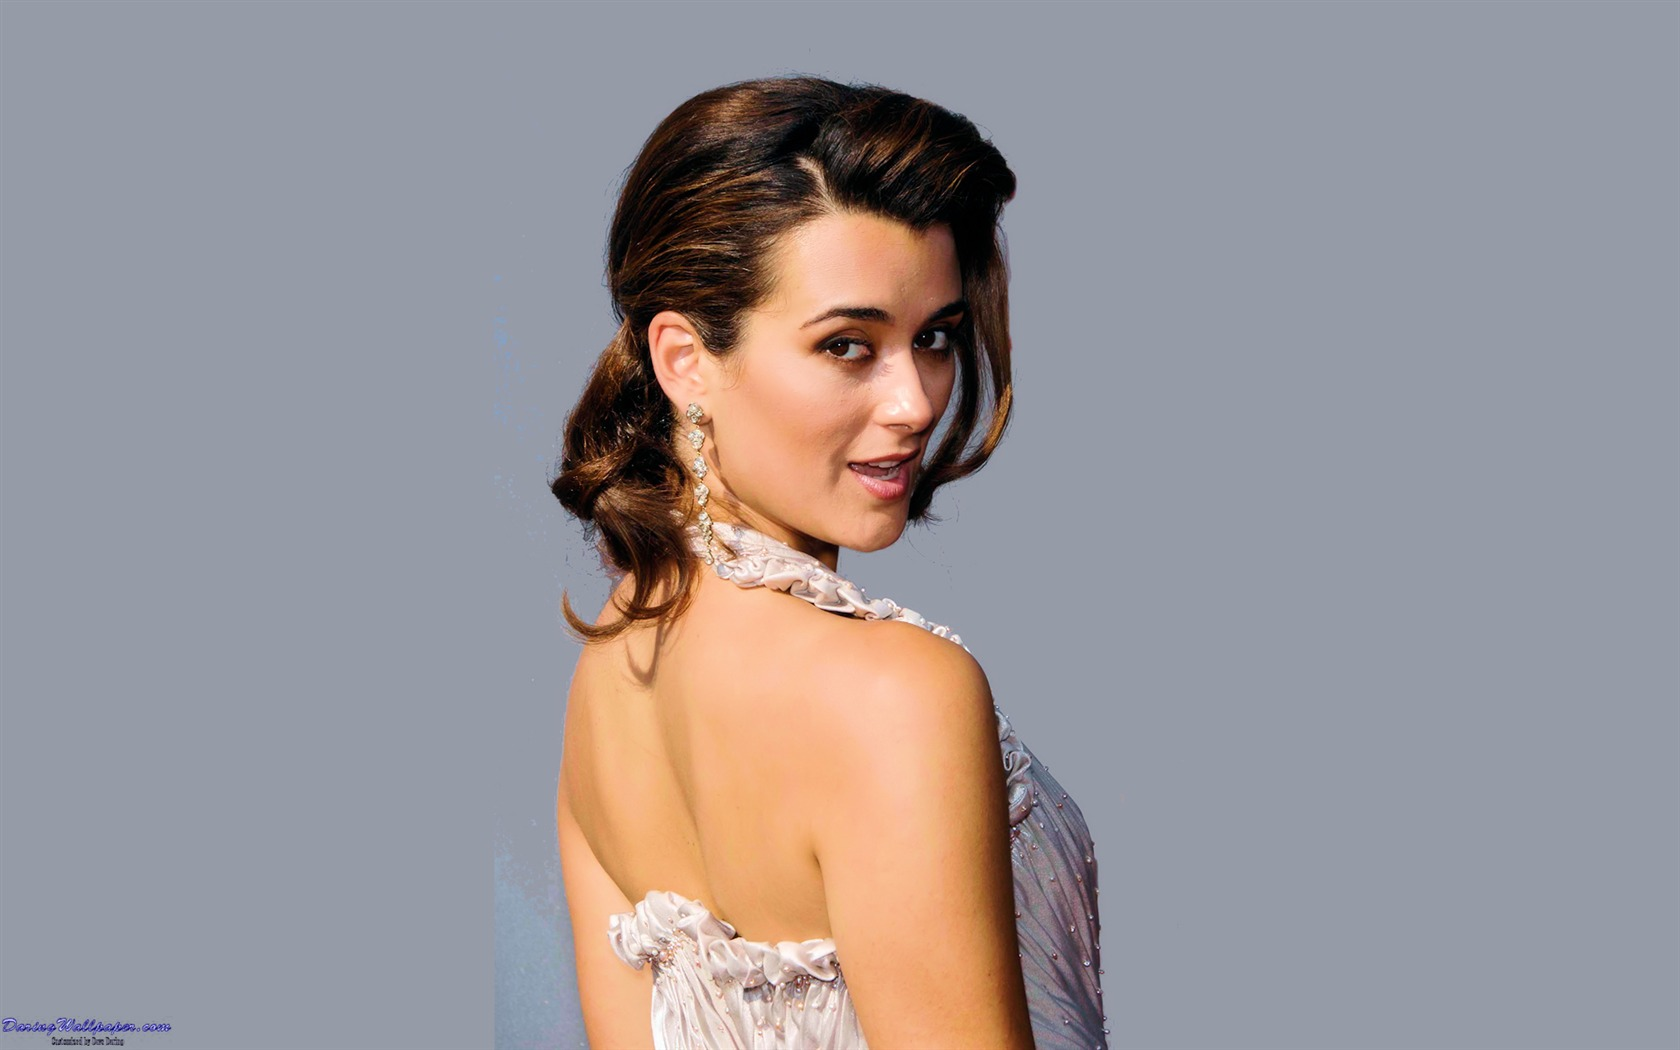 Cote de Pablo #020 - 1680x1050 Wallpapers Pictures Photos Images